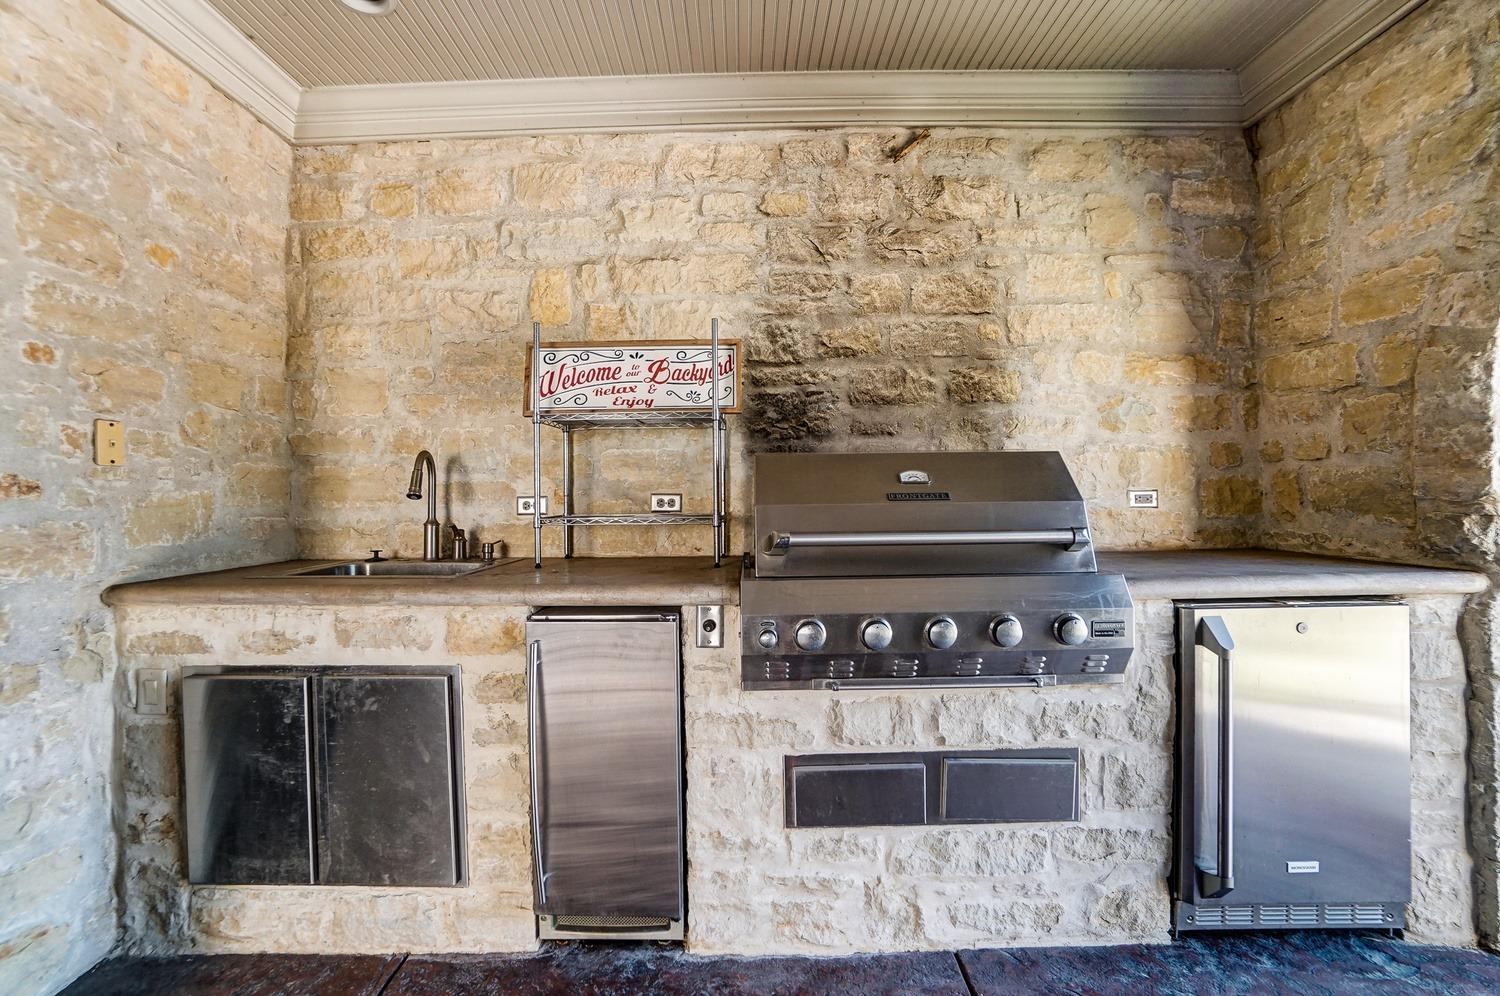 A covered stone outdoor kitchen equipped with a Frontgate grill, refrigerator, ice maker, prep sink and counter.